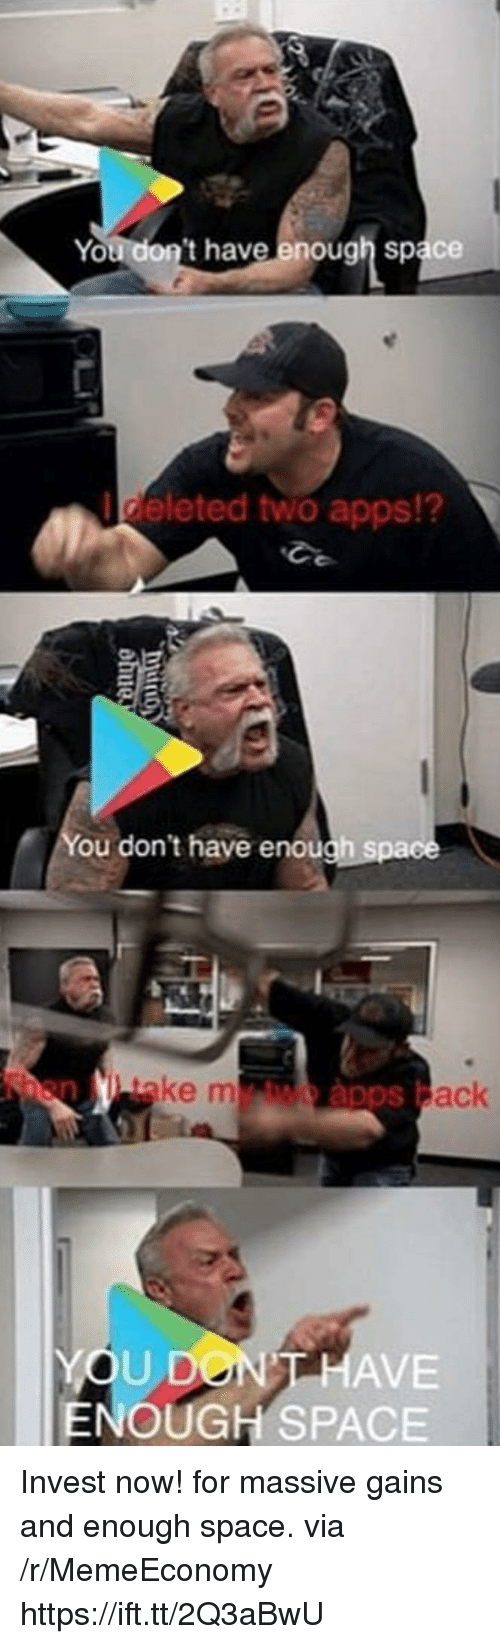 Apps, Space, and Invest: You don't have enough space  deleted two apps!?  ou don't have enough spa  ake m  ack  YOU DON  ENOUGH SPACE  HAVE Invest now! for massive gains and enough space. via /r/MemeEconomy https://ift.tt/2Q3aBwU